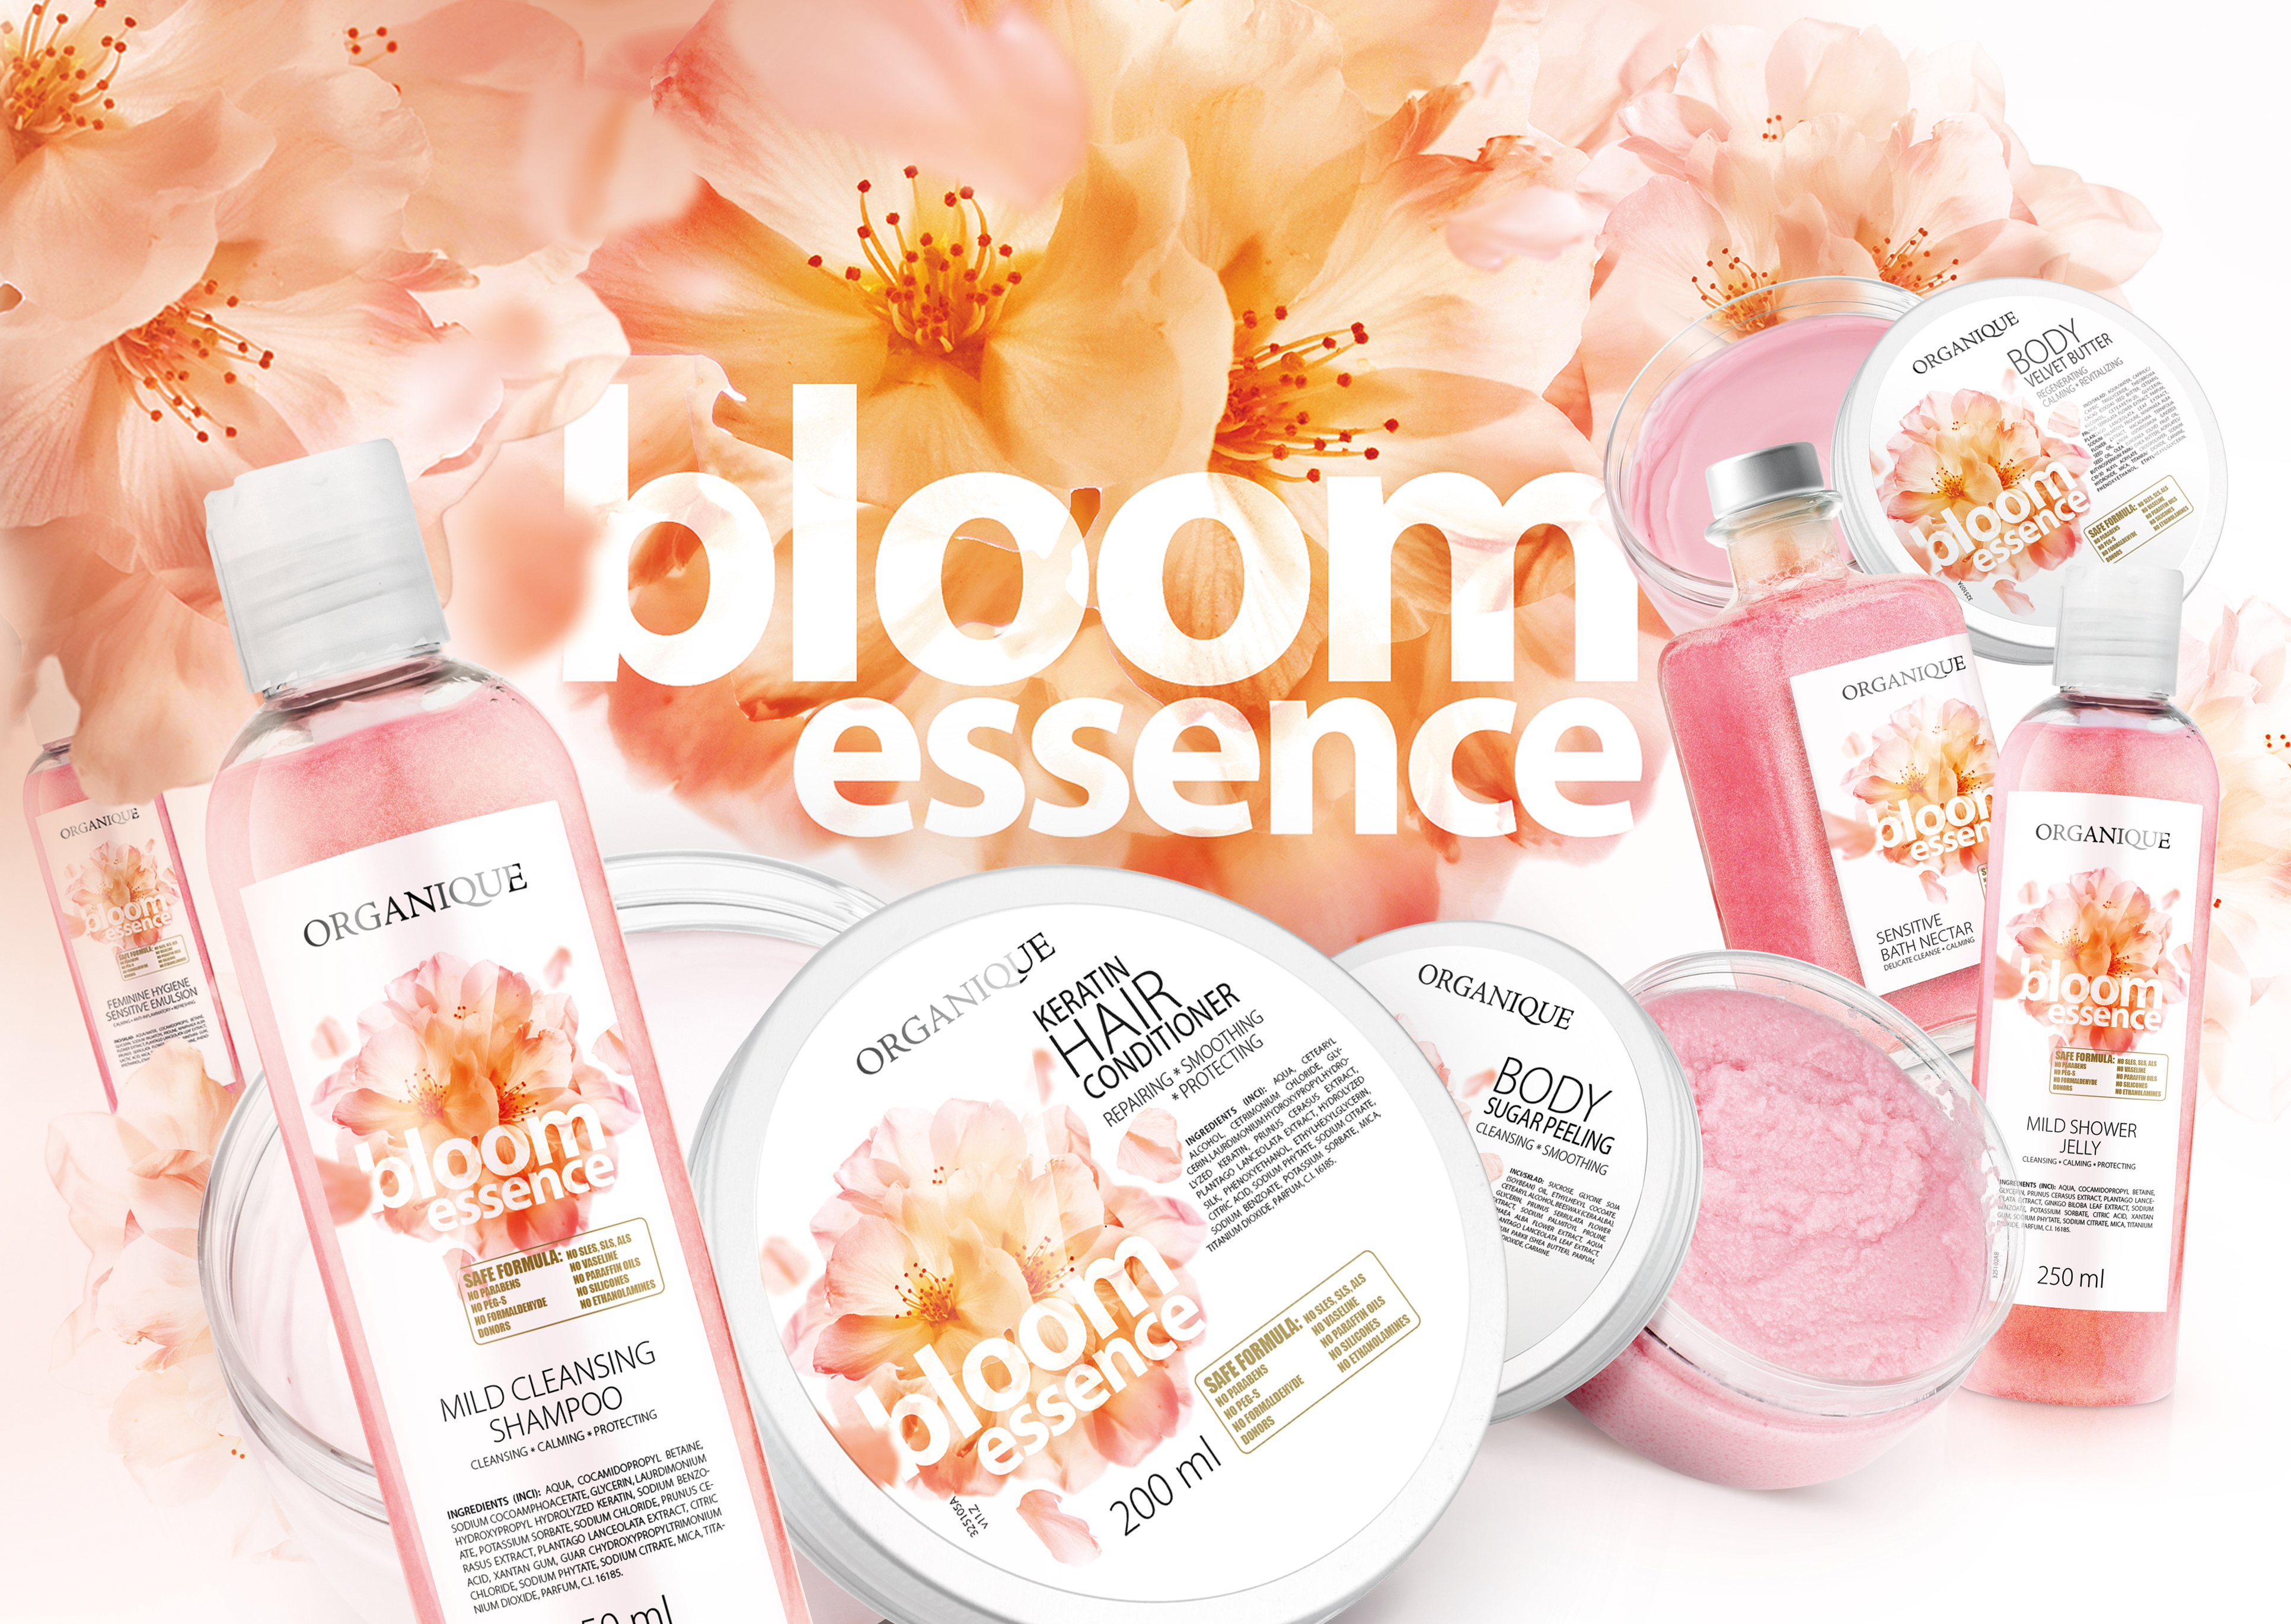 bloom_essence_cala_linia___